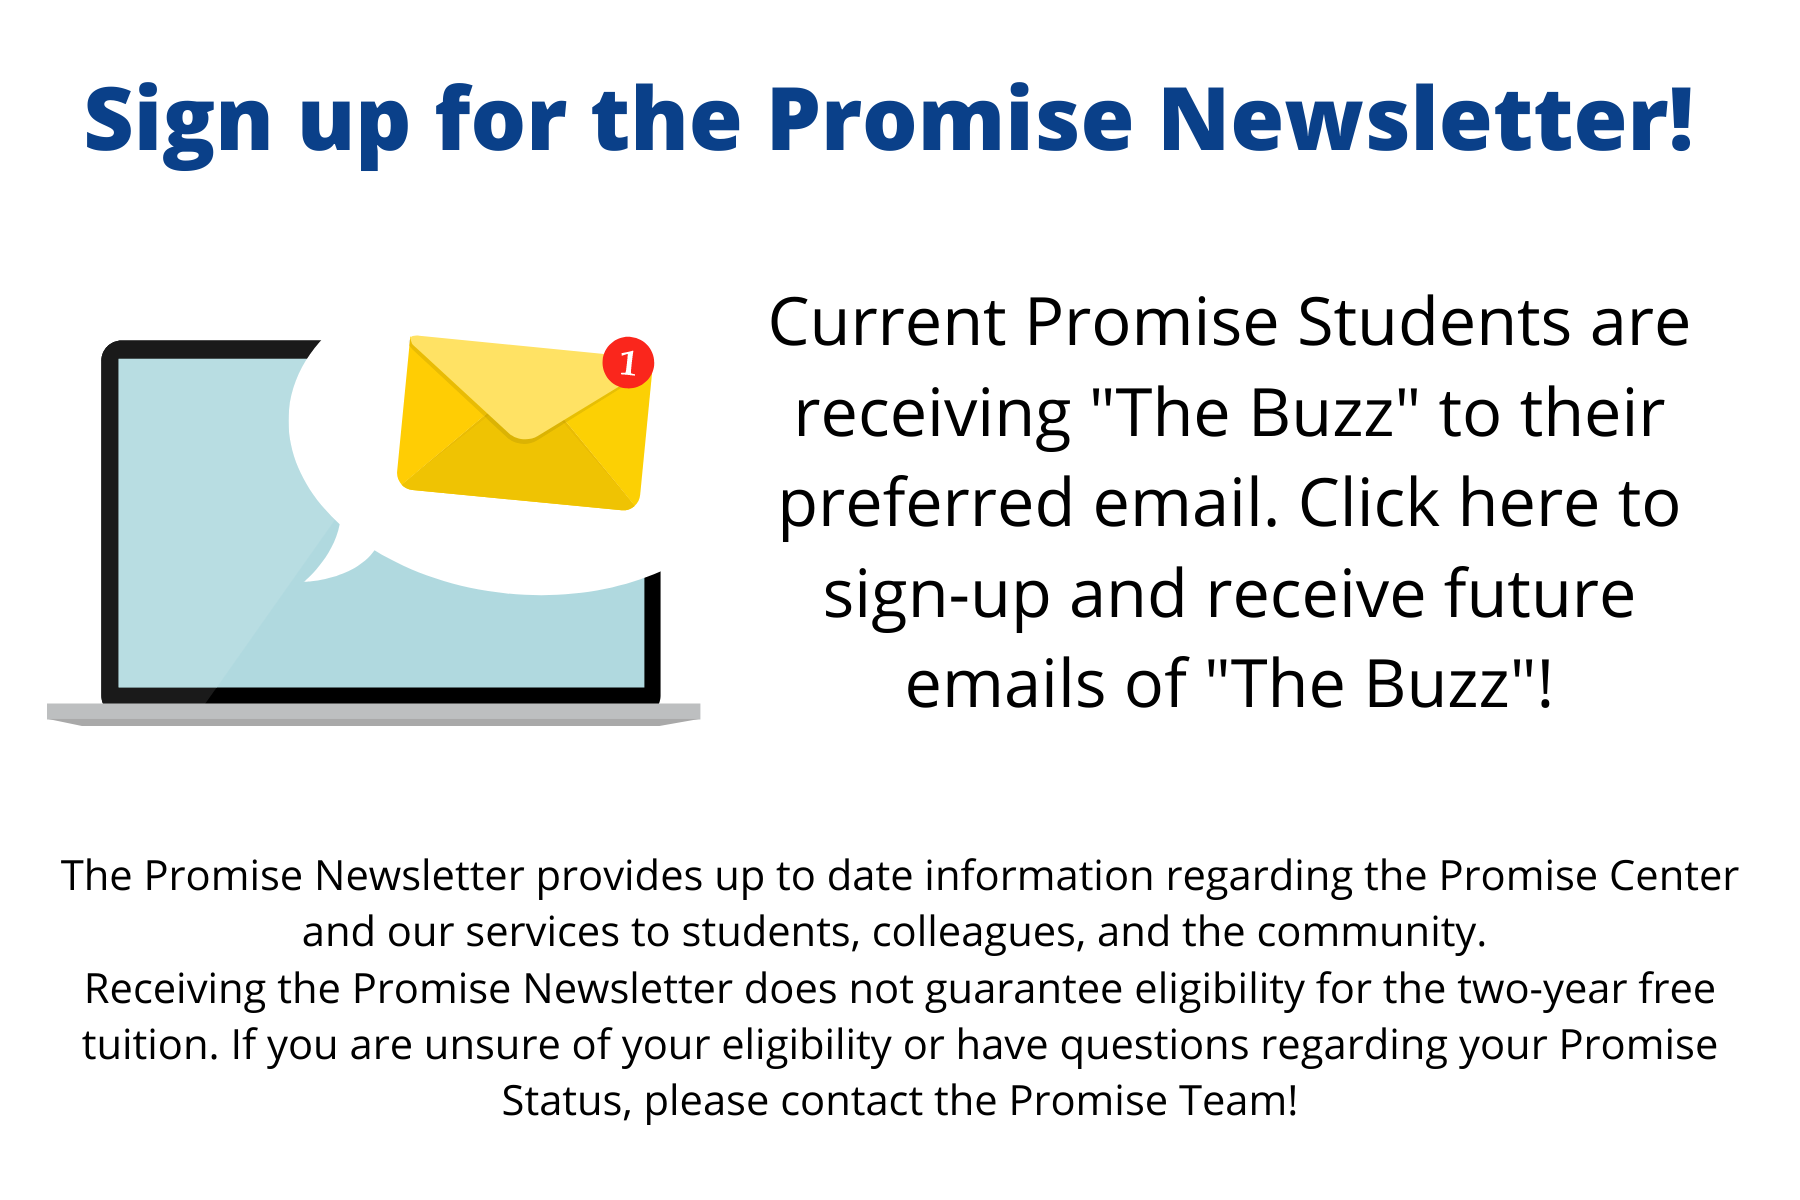 Click here to sign up for the Promise Newsletter